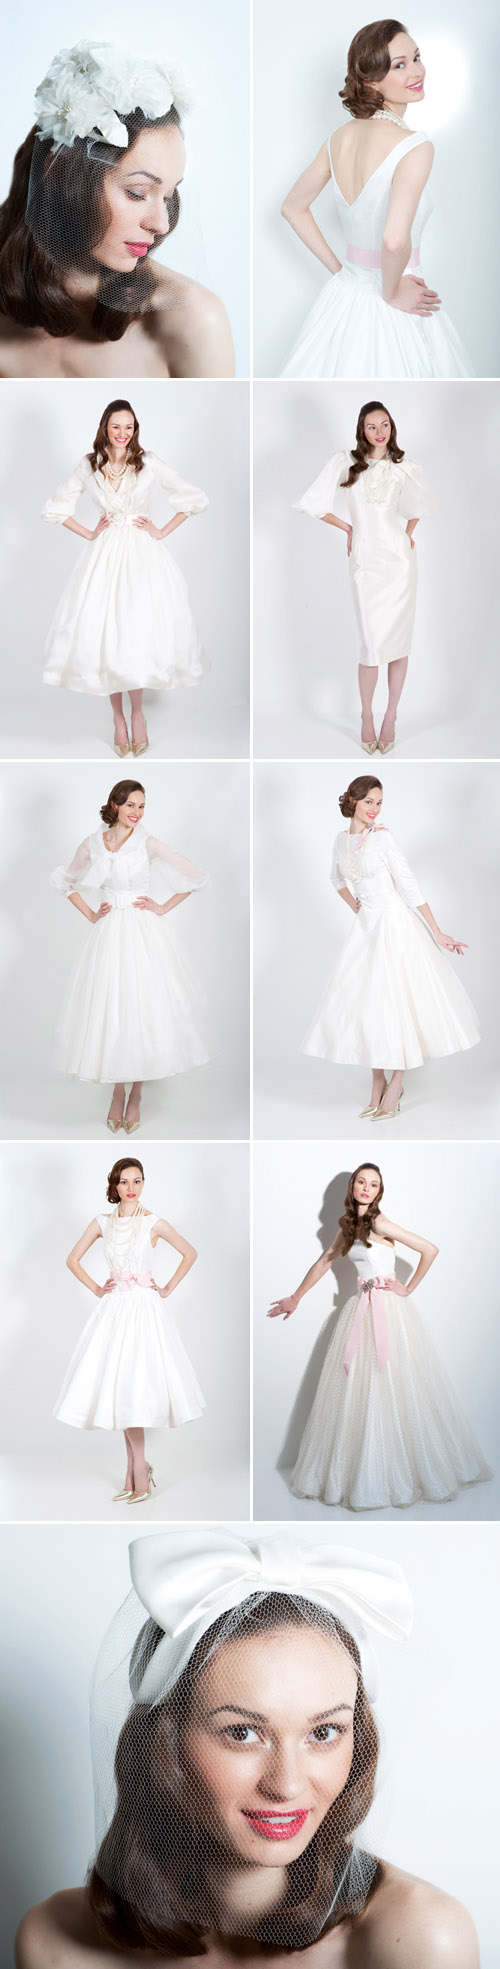 vintage style wedding dresses, veils and accessories from Fancy New York